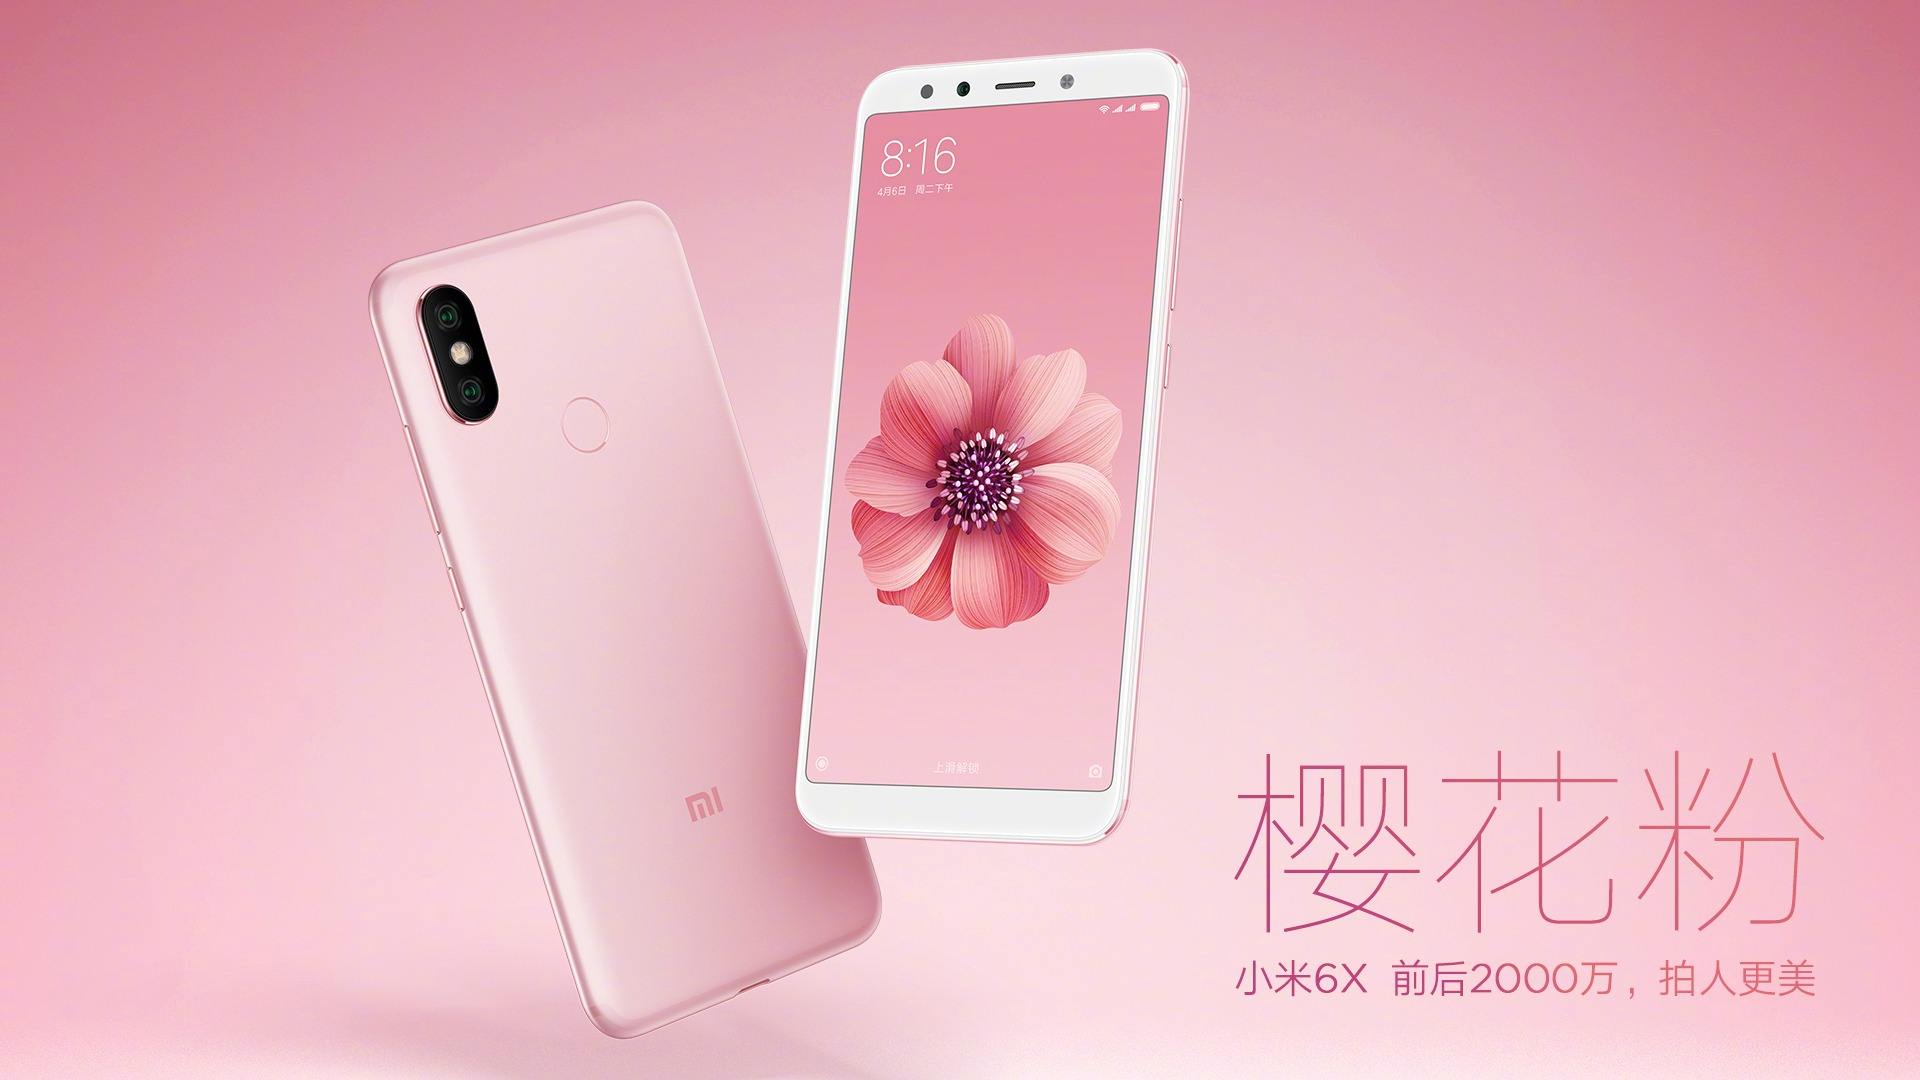 Xiaomi Mi 6X teased in video ahead of April 25 launch